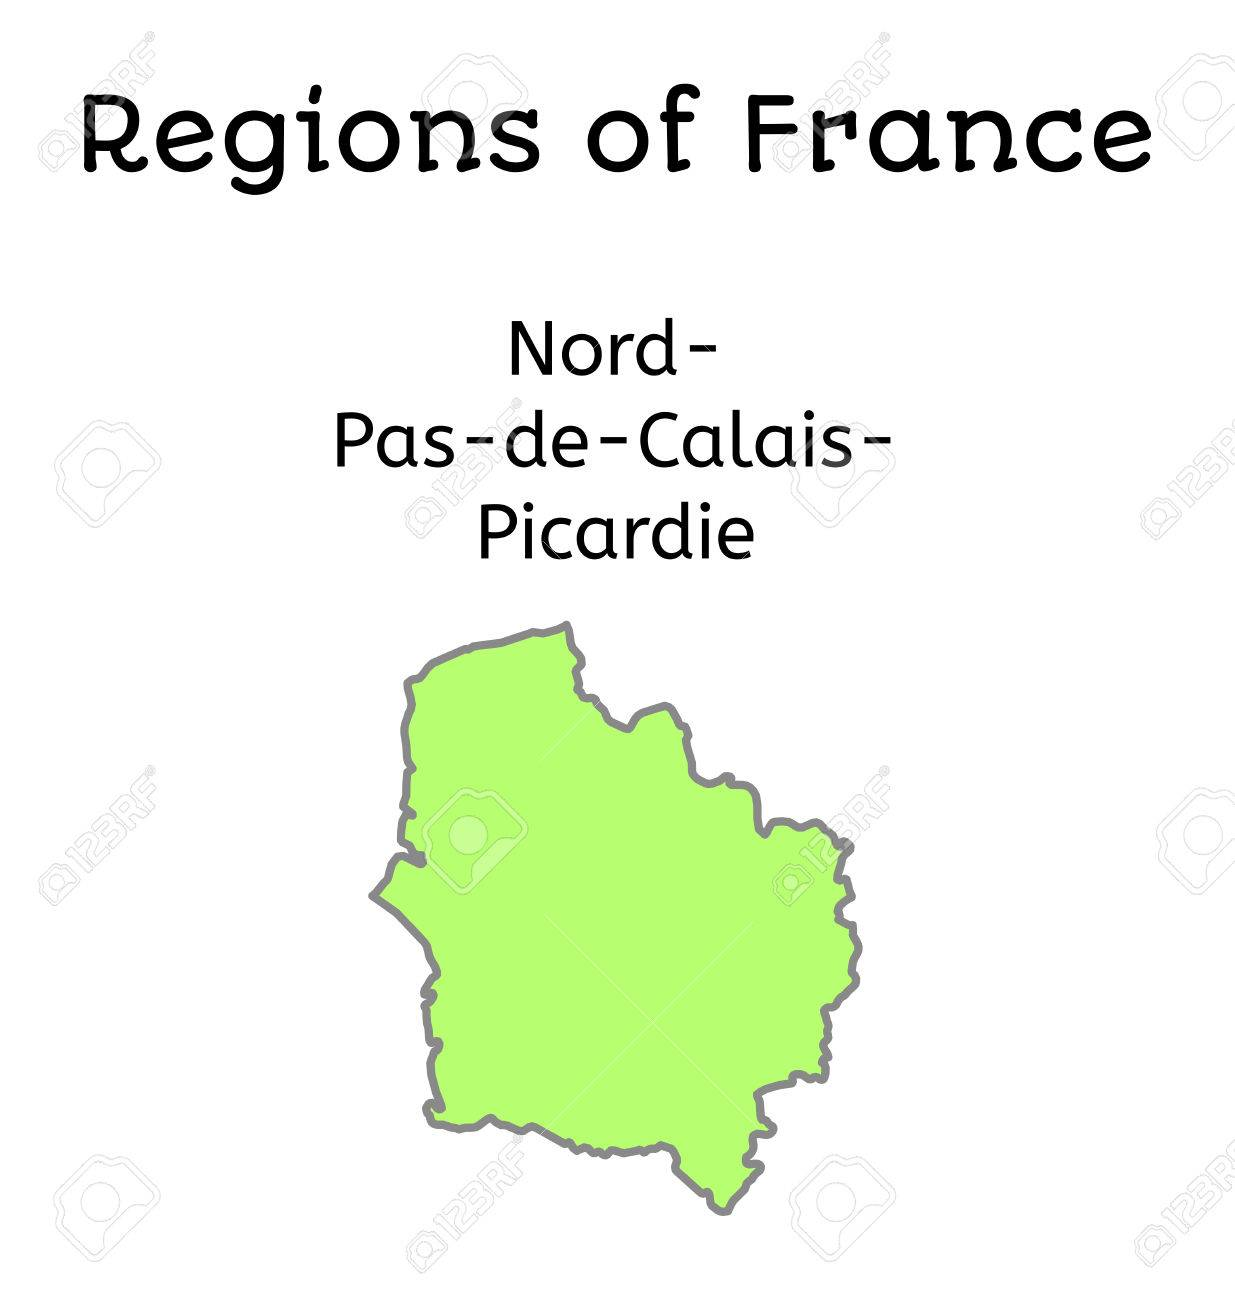 France Administrative Map Of Nord Pas De Calais Picardy Region Royalty Free Cliparts Vectors And Stock Illustration Image 56426978